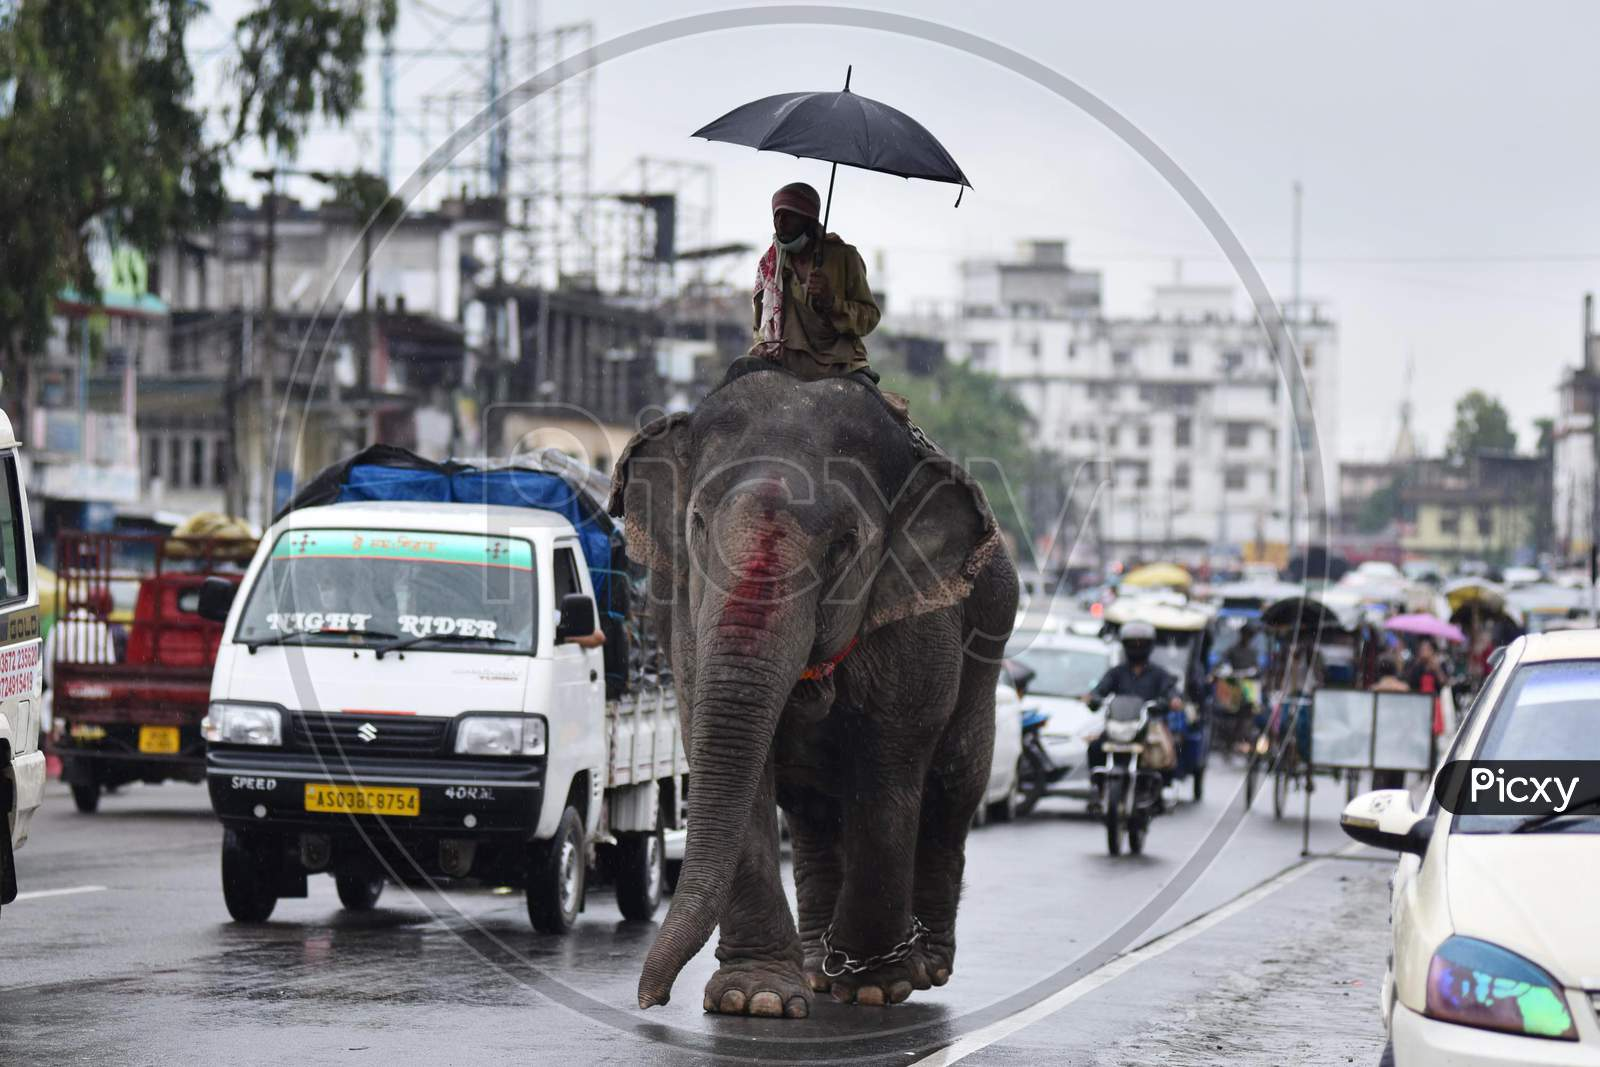 An elephant and its keeper move through rains on a street in Nagaon District of Assam on September 14, 2020